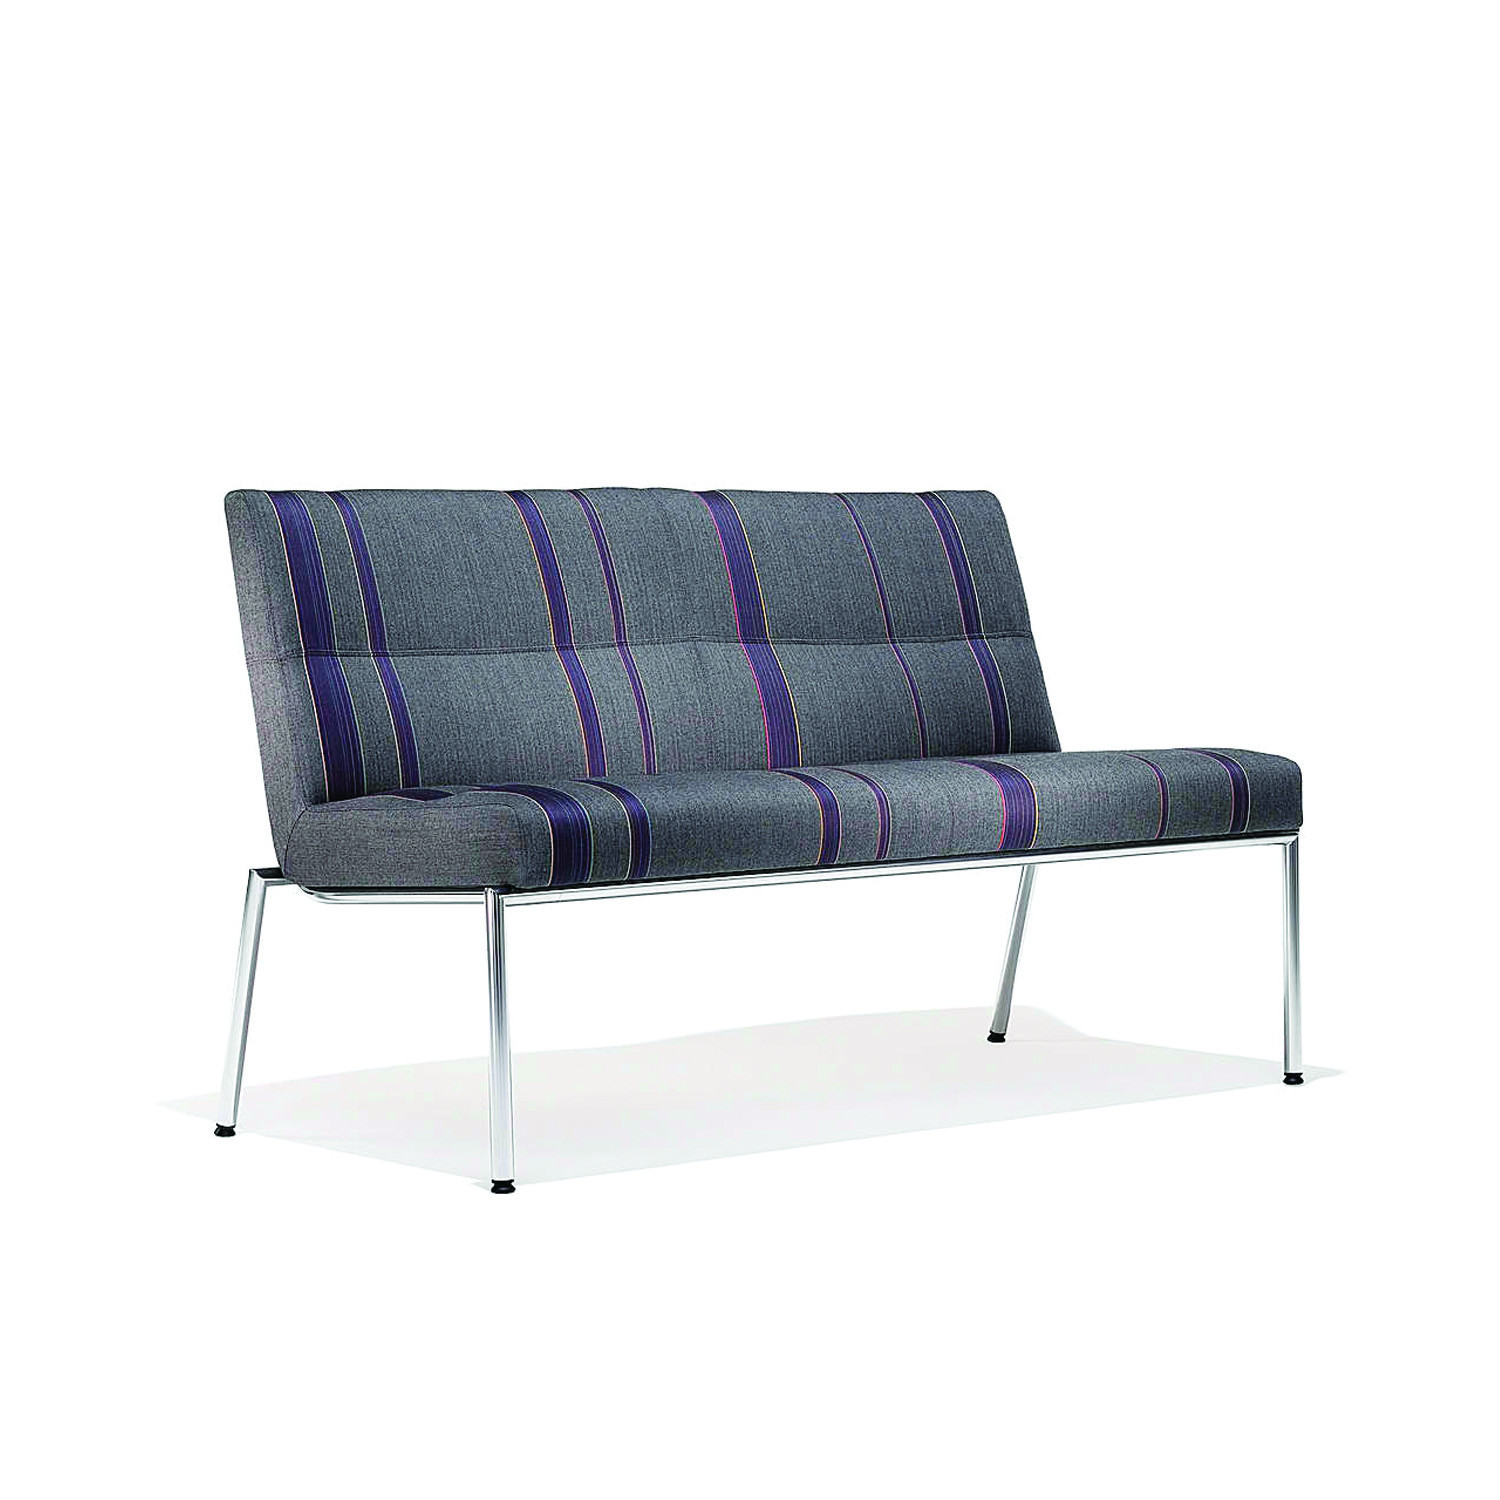 3150 Scorpii Reception Bench with Backrest